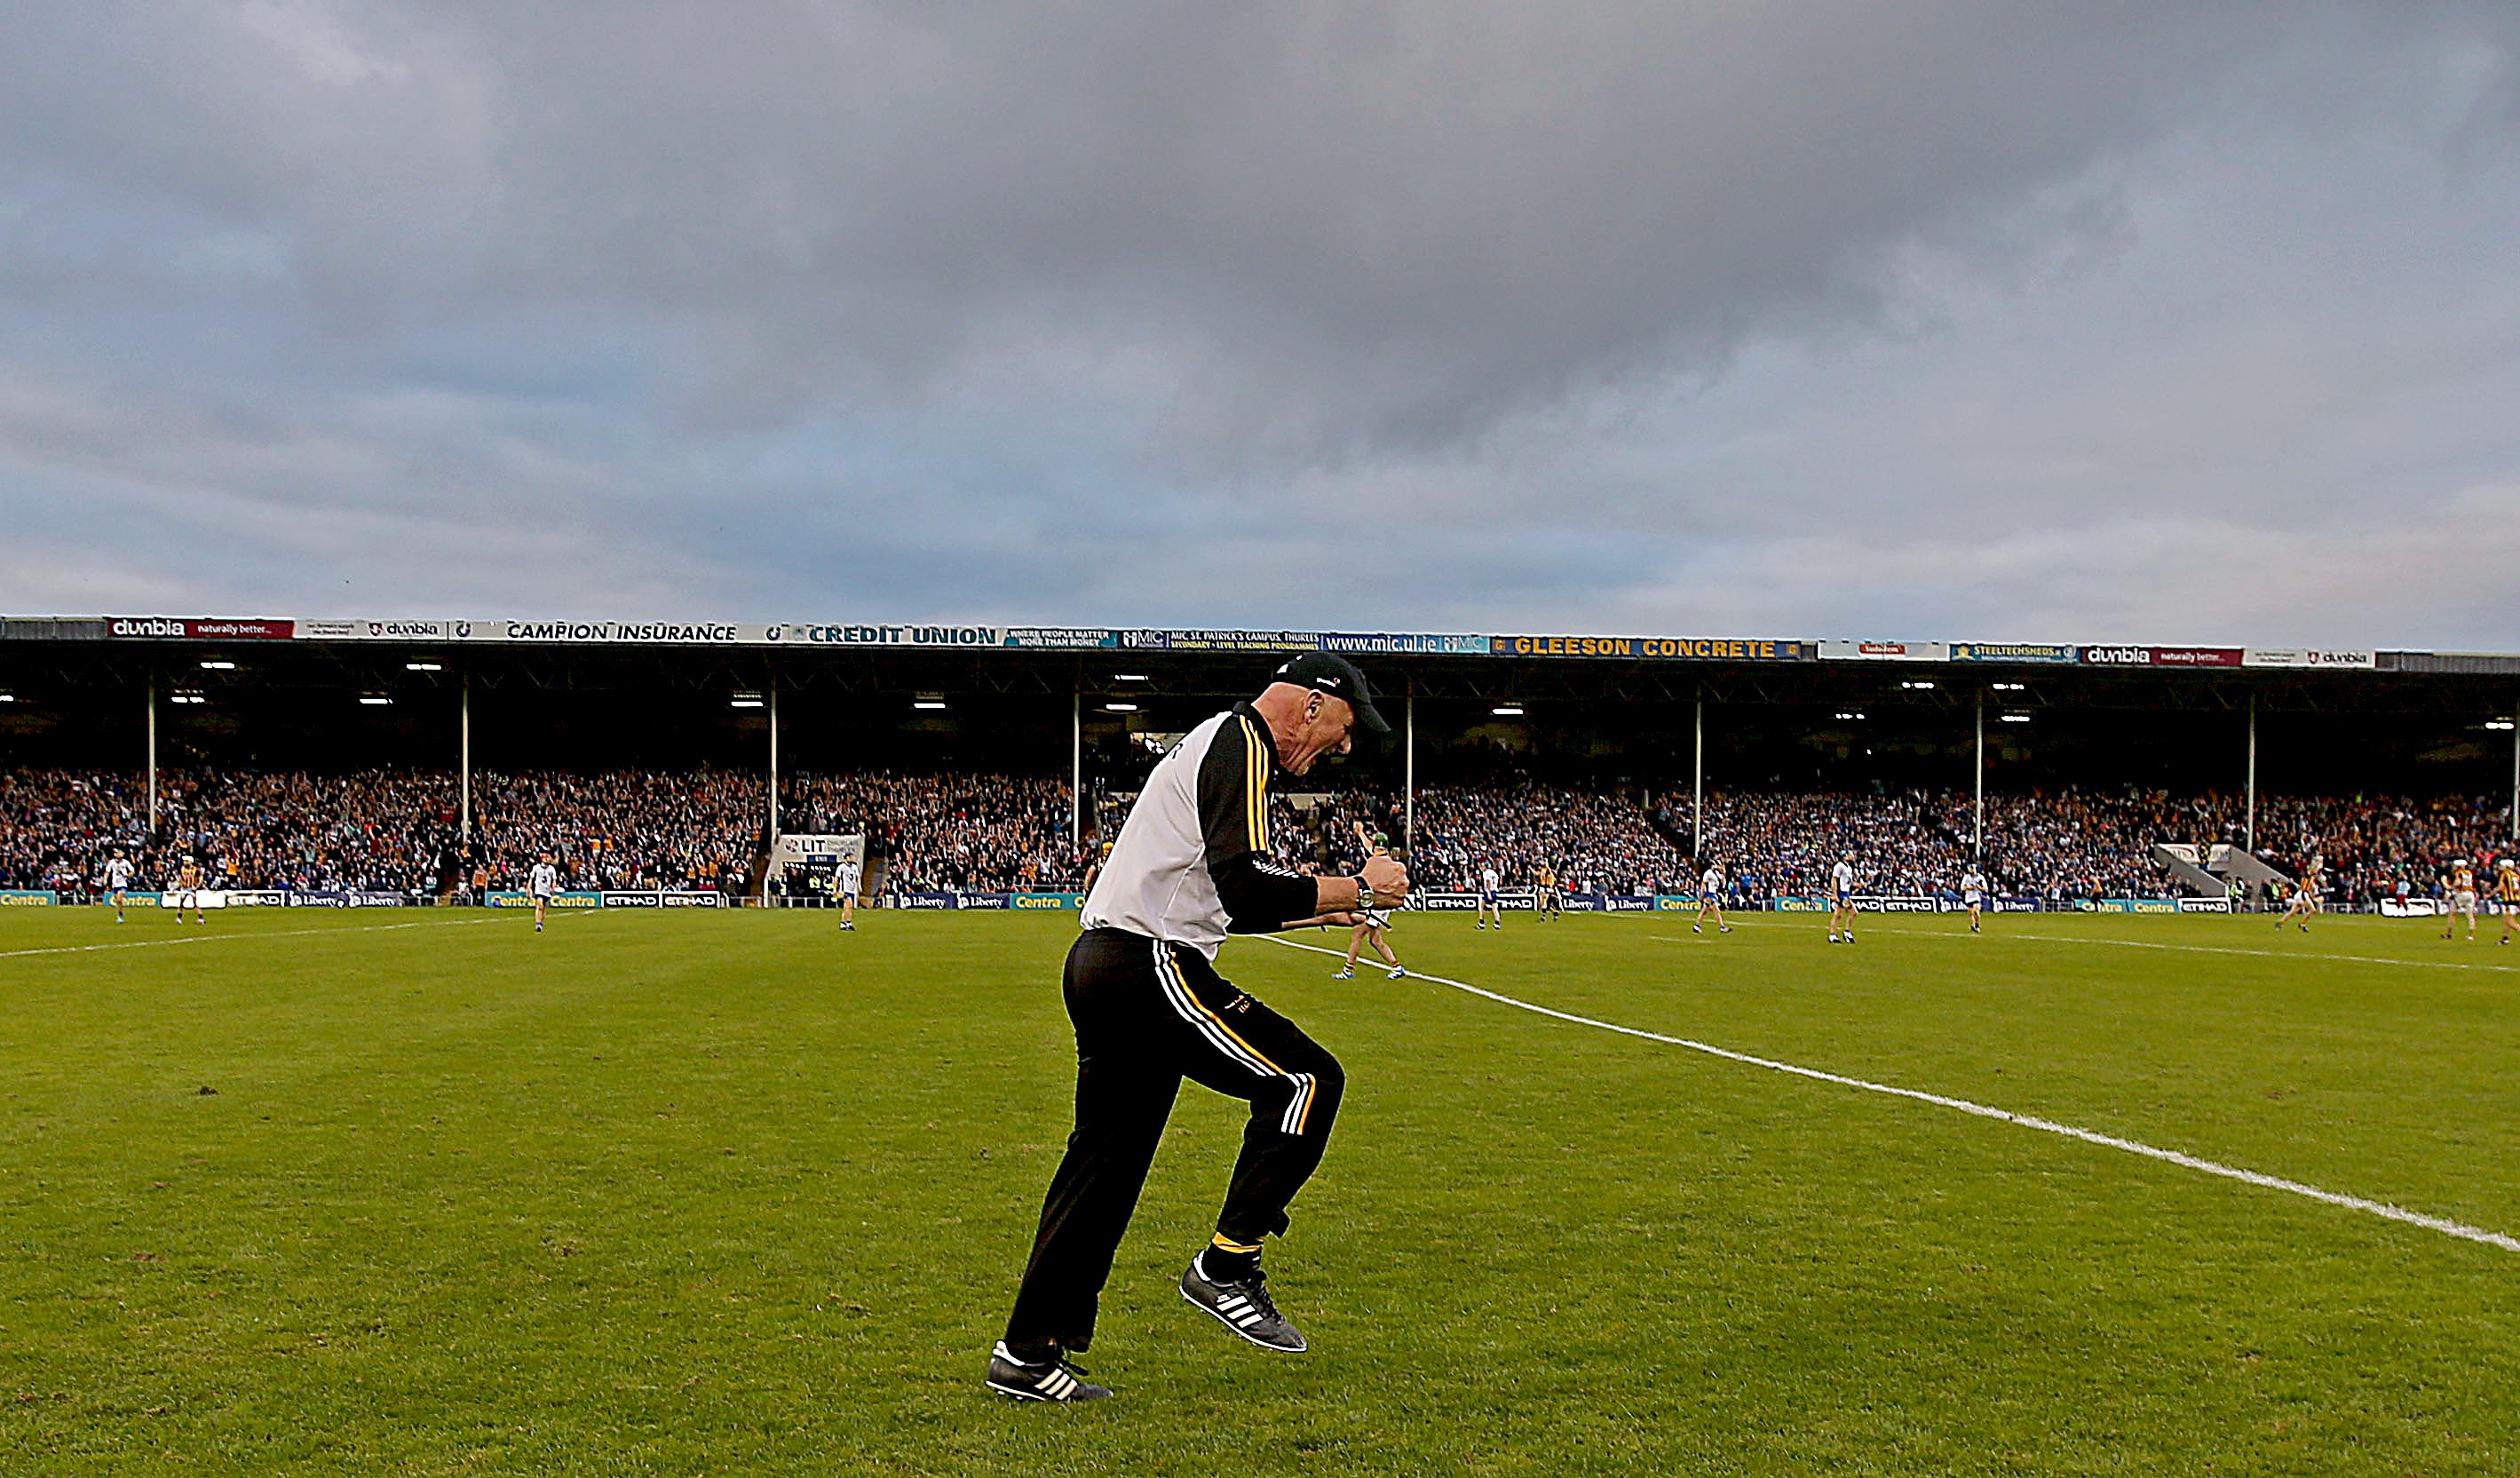 GAA All-Ireland Senior Hurling Championship Semi-Final Replay, Semple Stadium, Tipperary 13/8/2016 Kilkenny vs Waterford Kilkenny manager Brian Cody celebrates in the closing stages Mandatory Credit ©INPHO/Donall Farmer